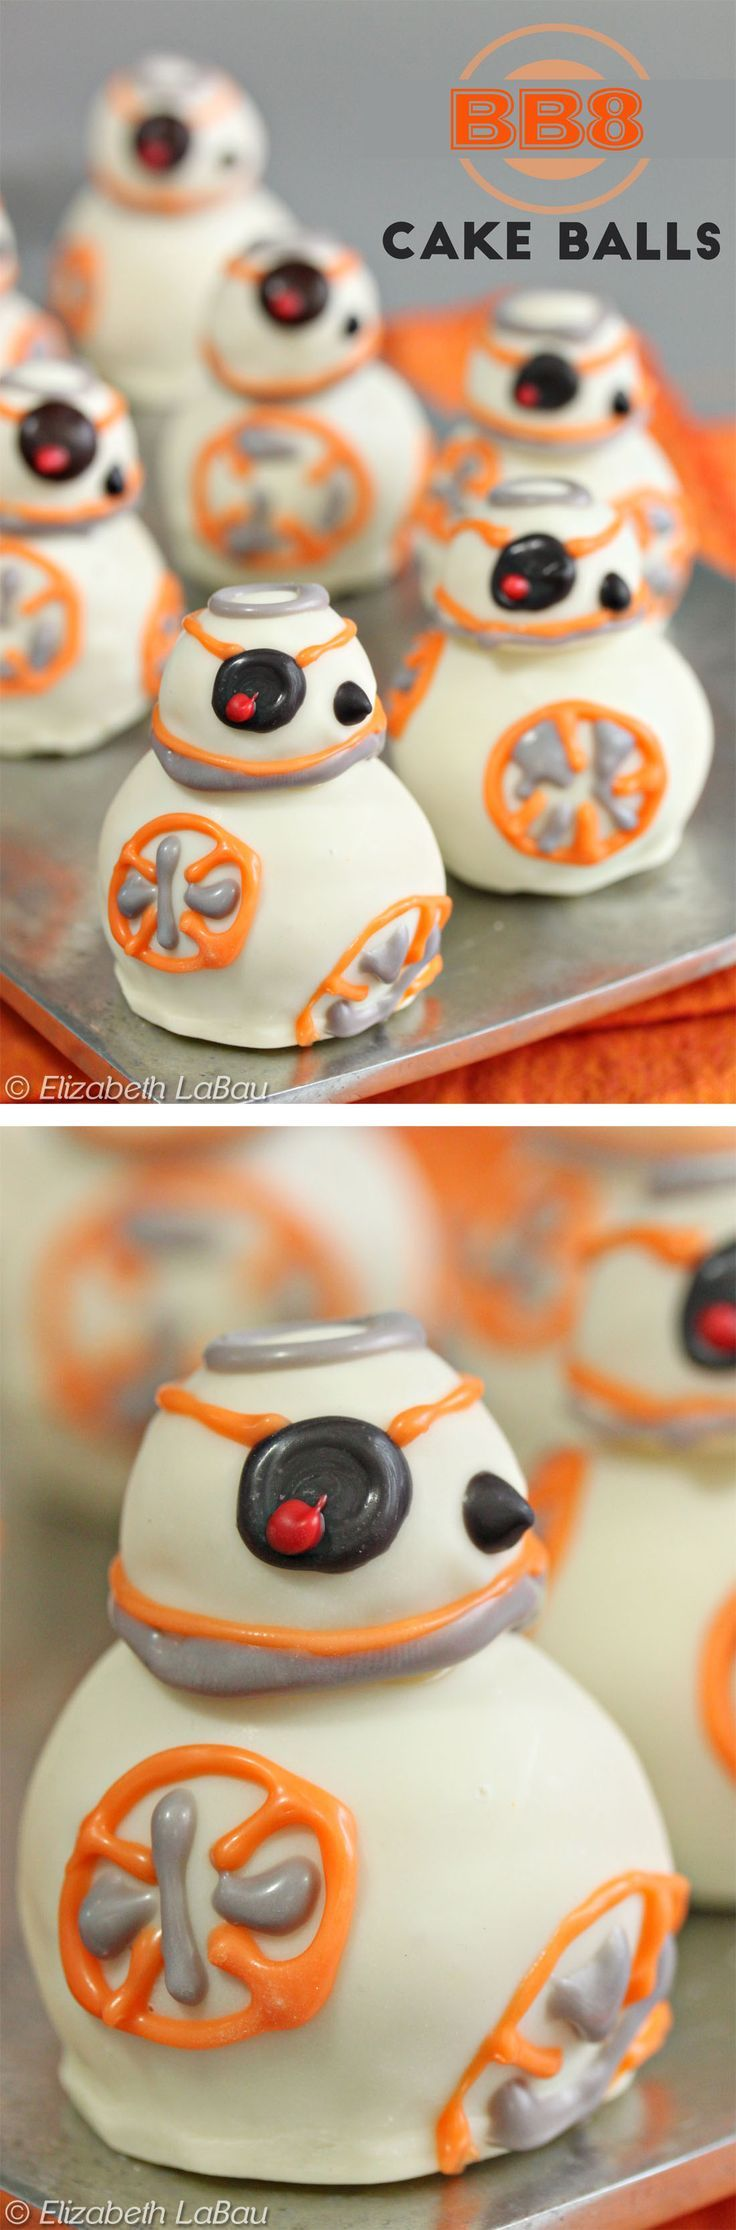 My r2 bb8 heart design is now a t shirt you can buy http tee pub - Bb 8 Cake Balls